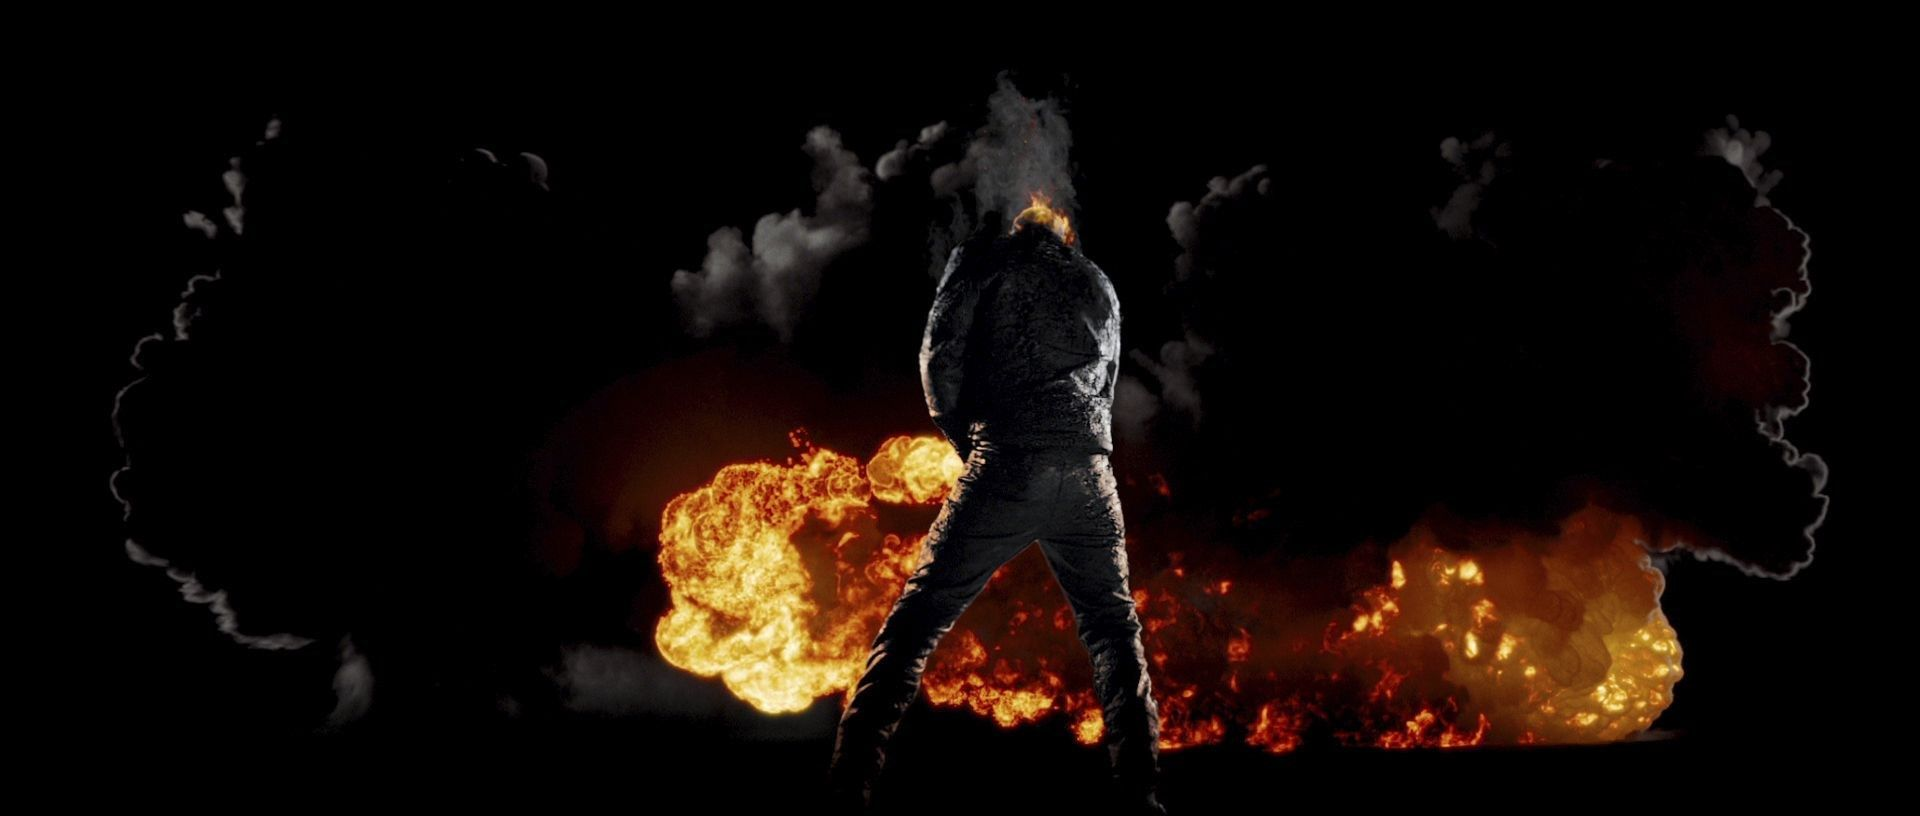 ghost rider spirit of vengeance wallpaper pack 1080p hdworley